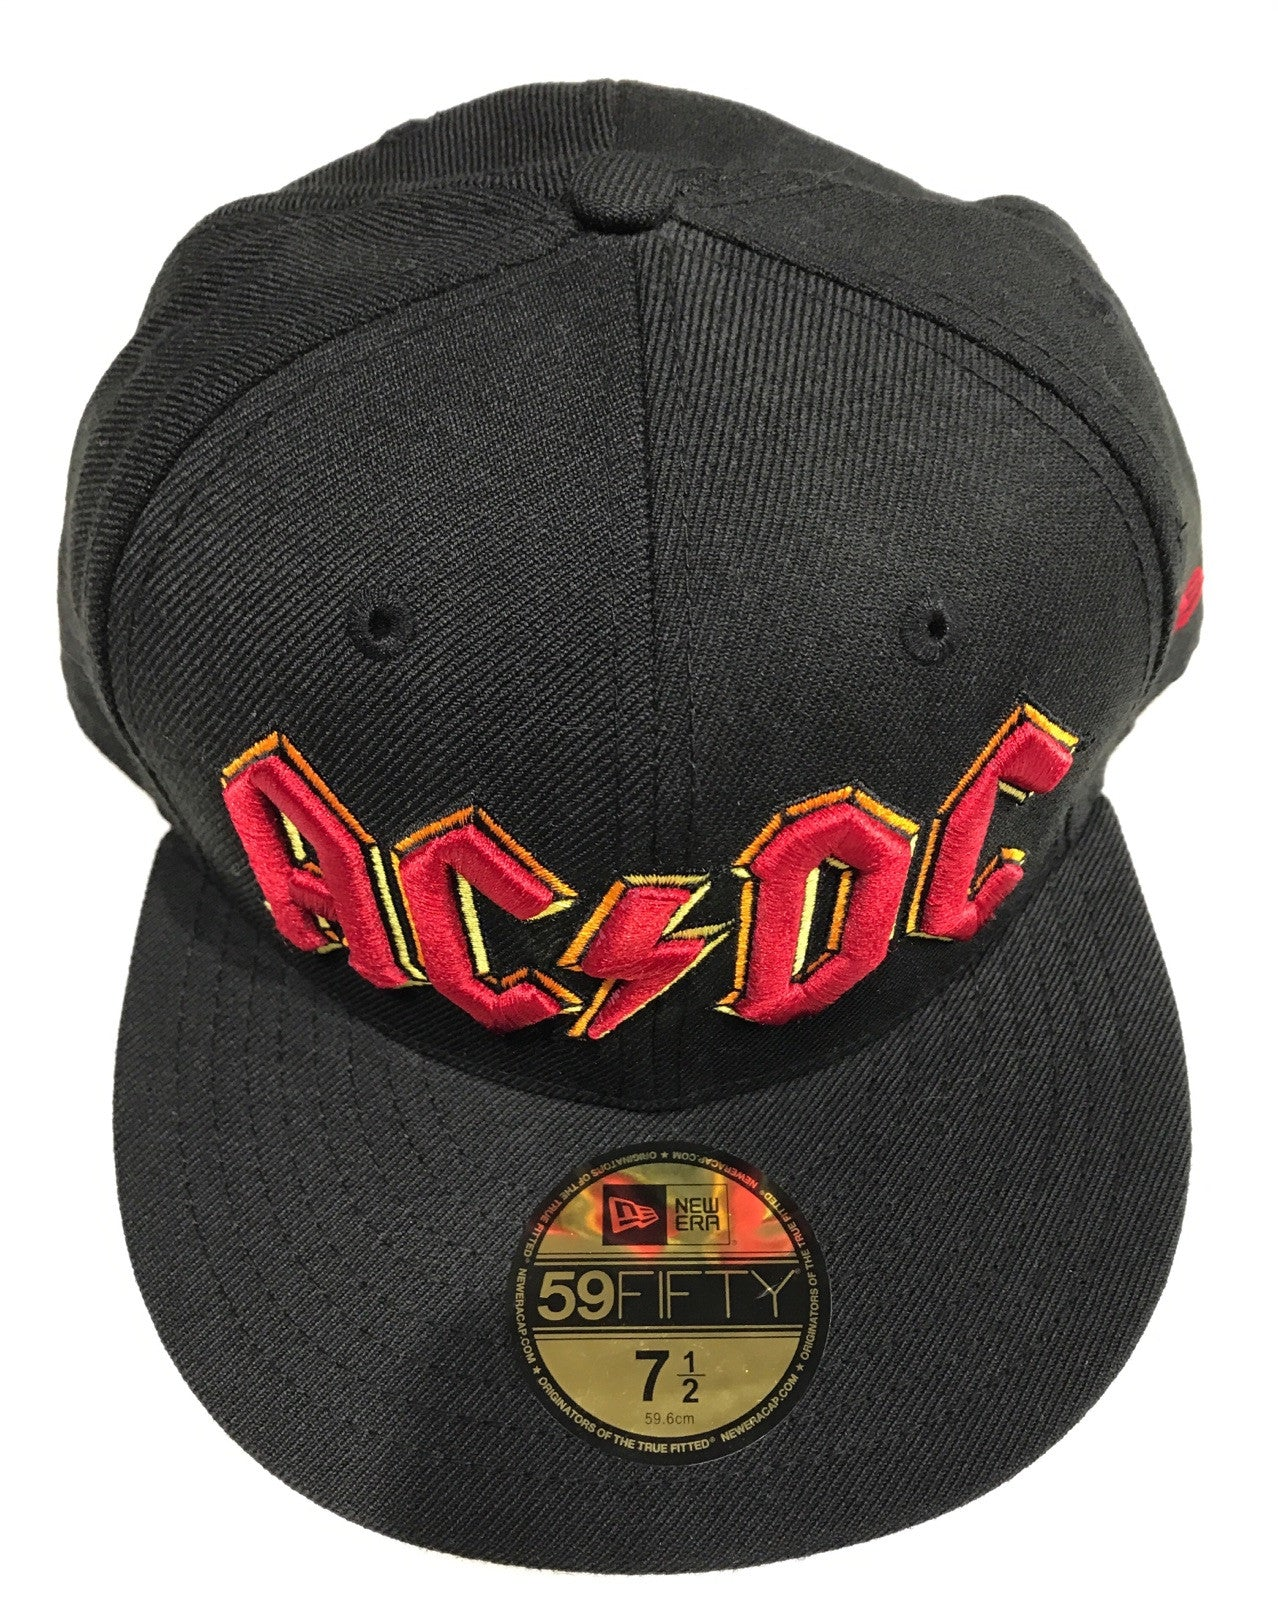 7c9ce125ed991 ACDC Hat Black 59FIFTY New Era. ACDC Hat Black Famous Rock Shop Newcastle  2300.